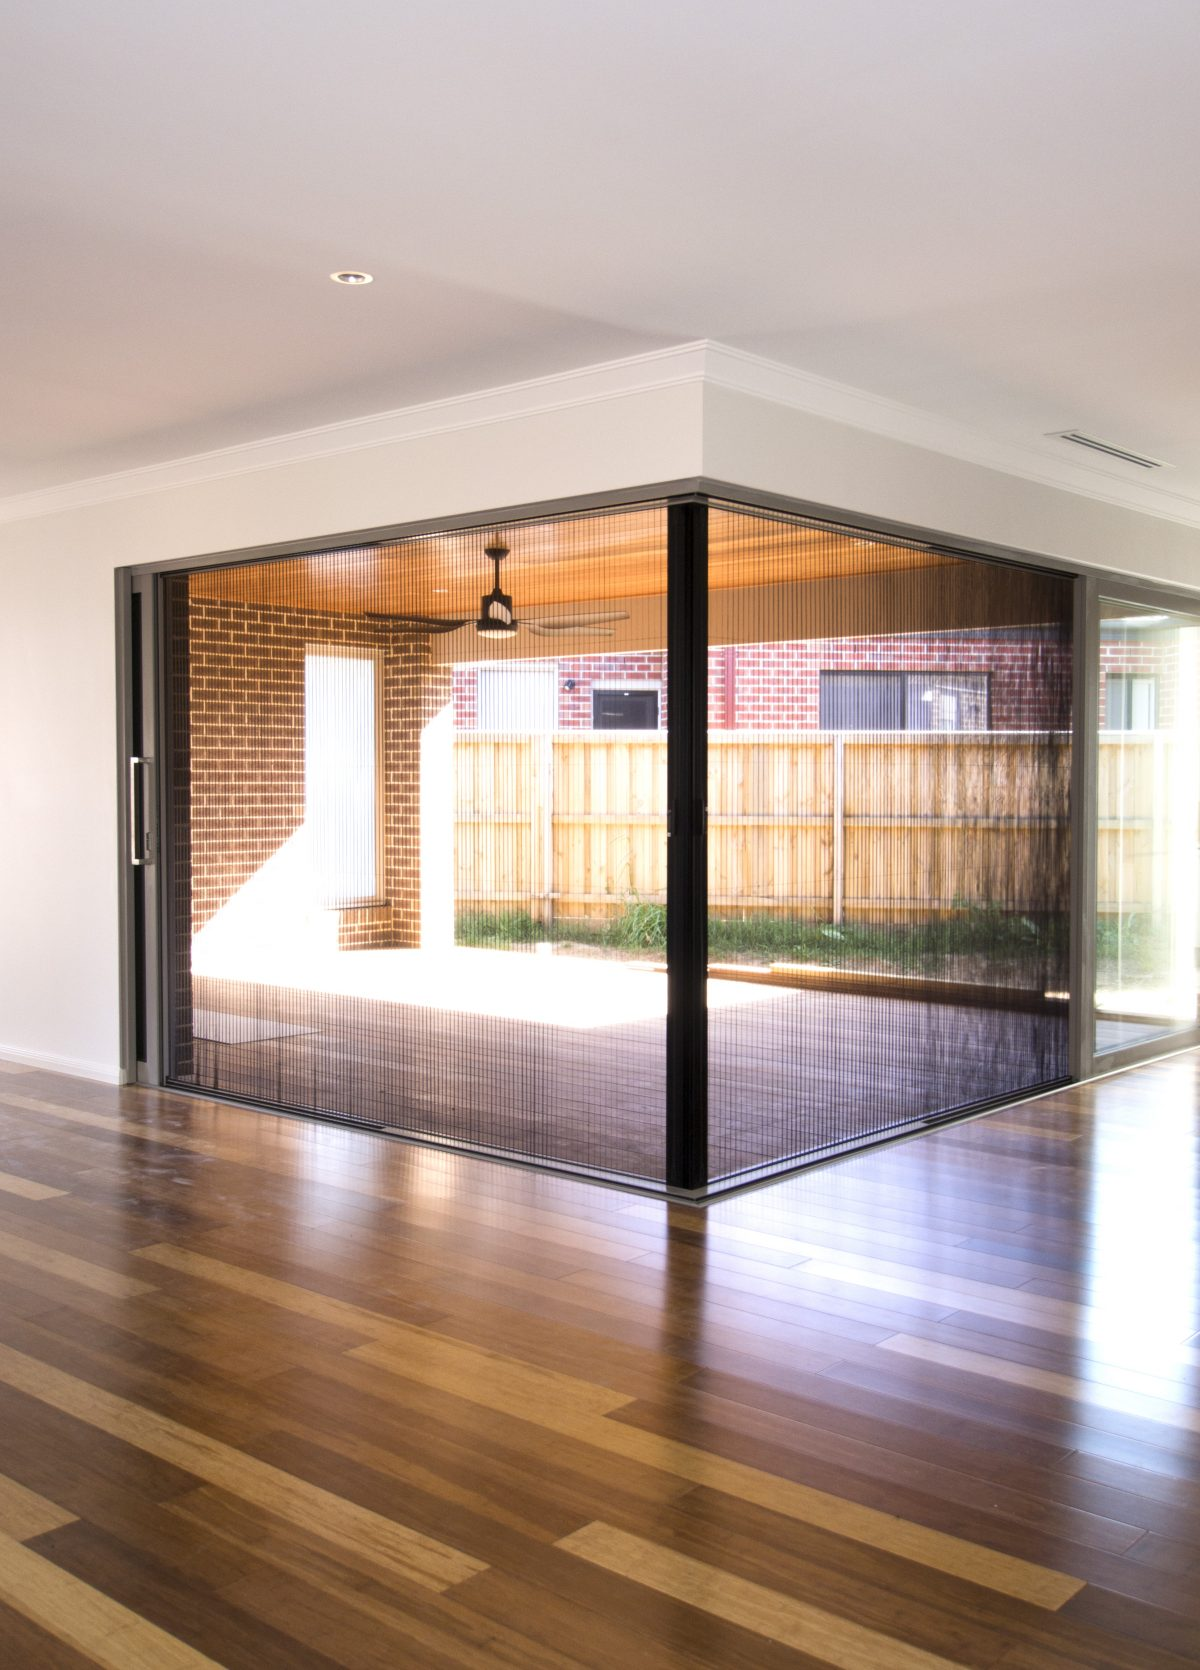 of screen screens enclosures image lowes door garage retractable home charter and ideas